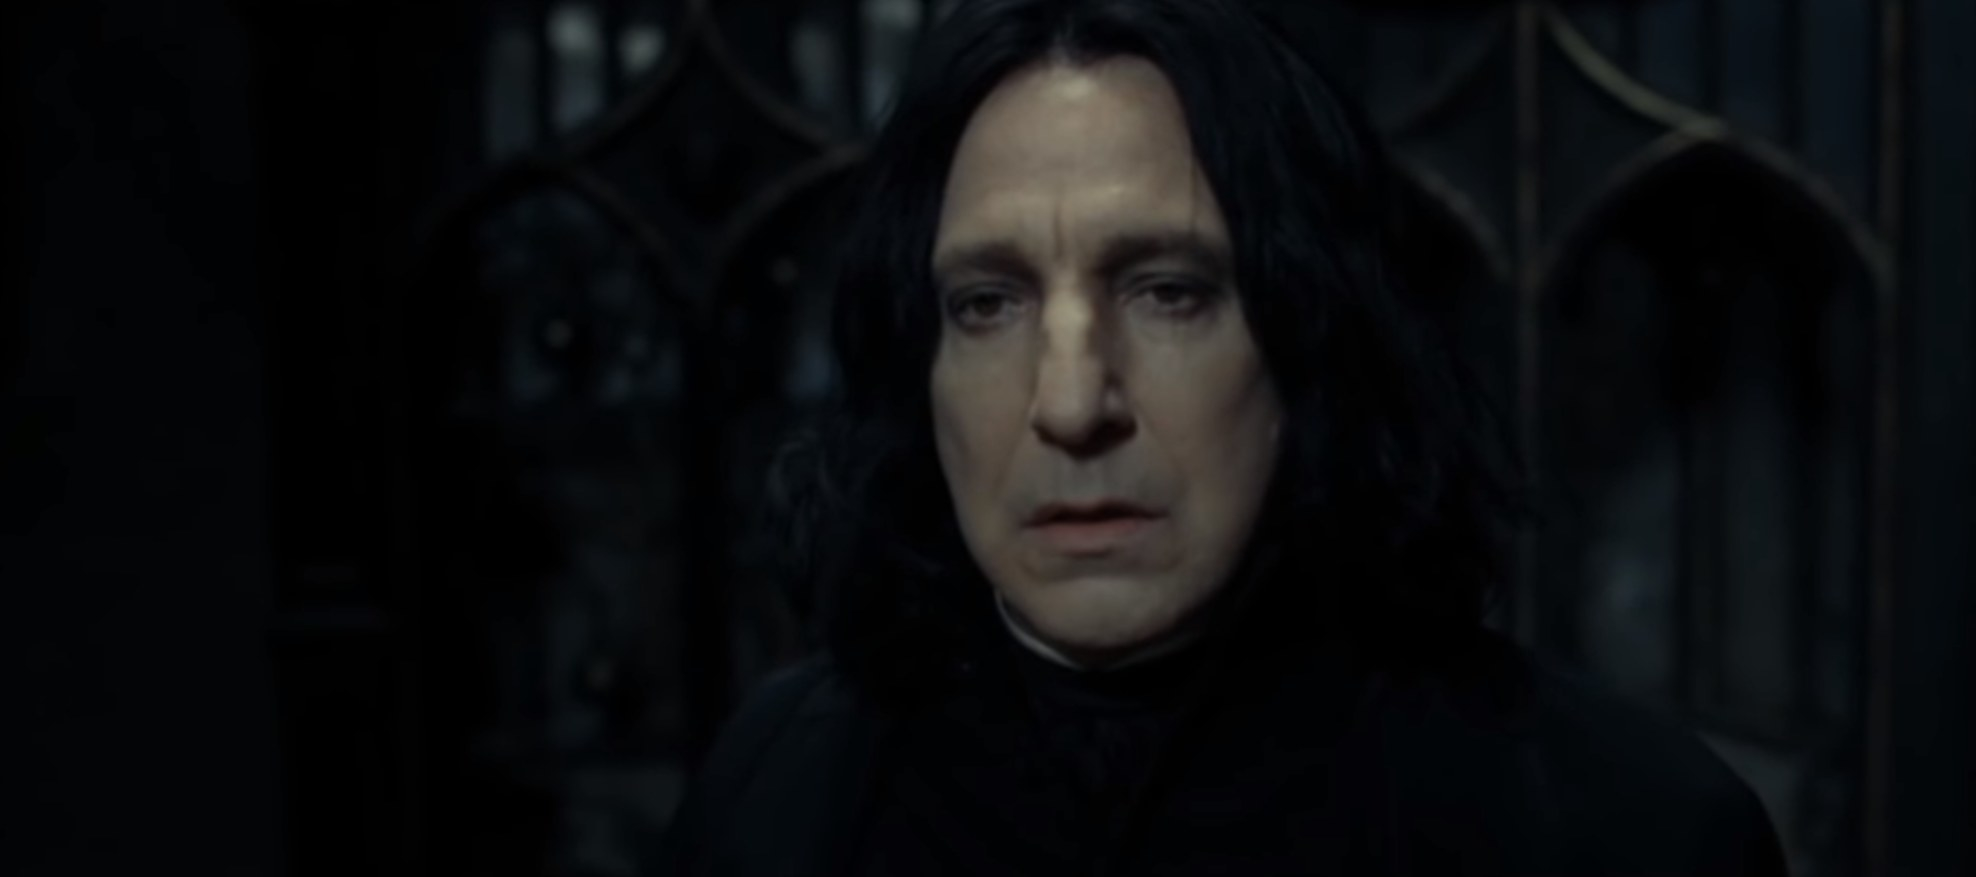 Snape looking forlornly as he remembers the death of Lily Potter